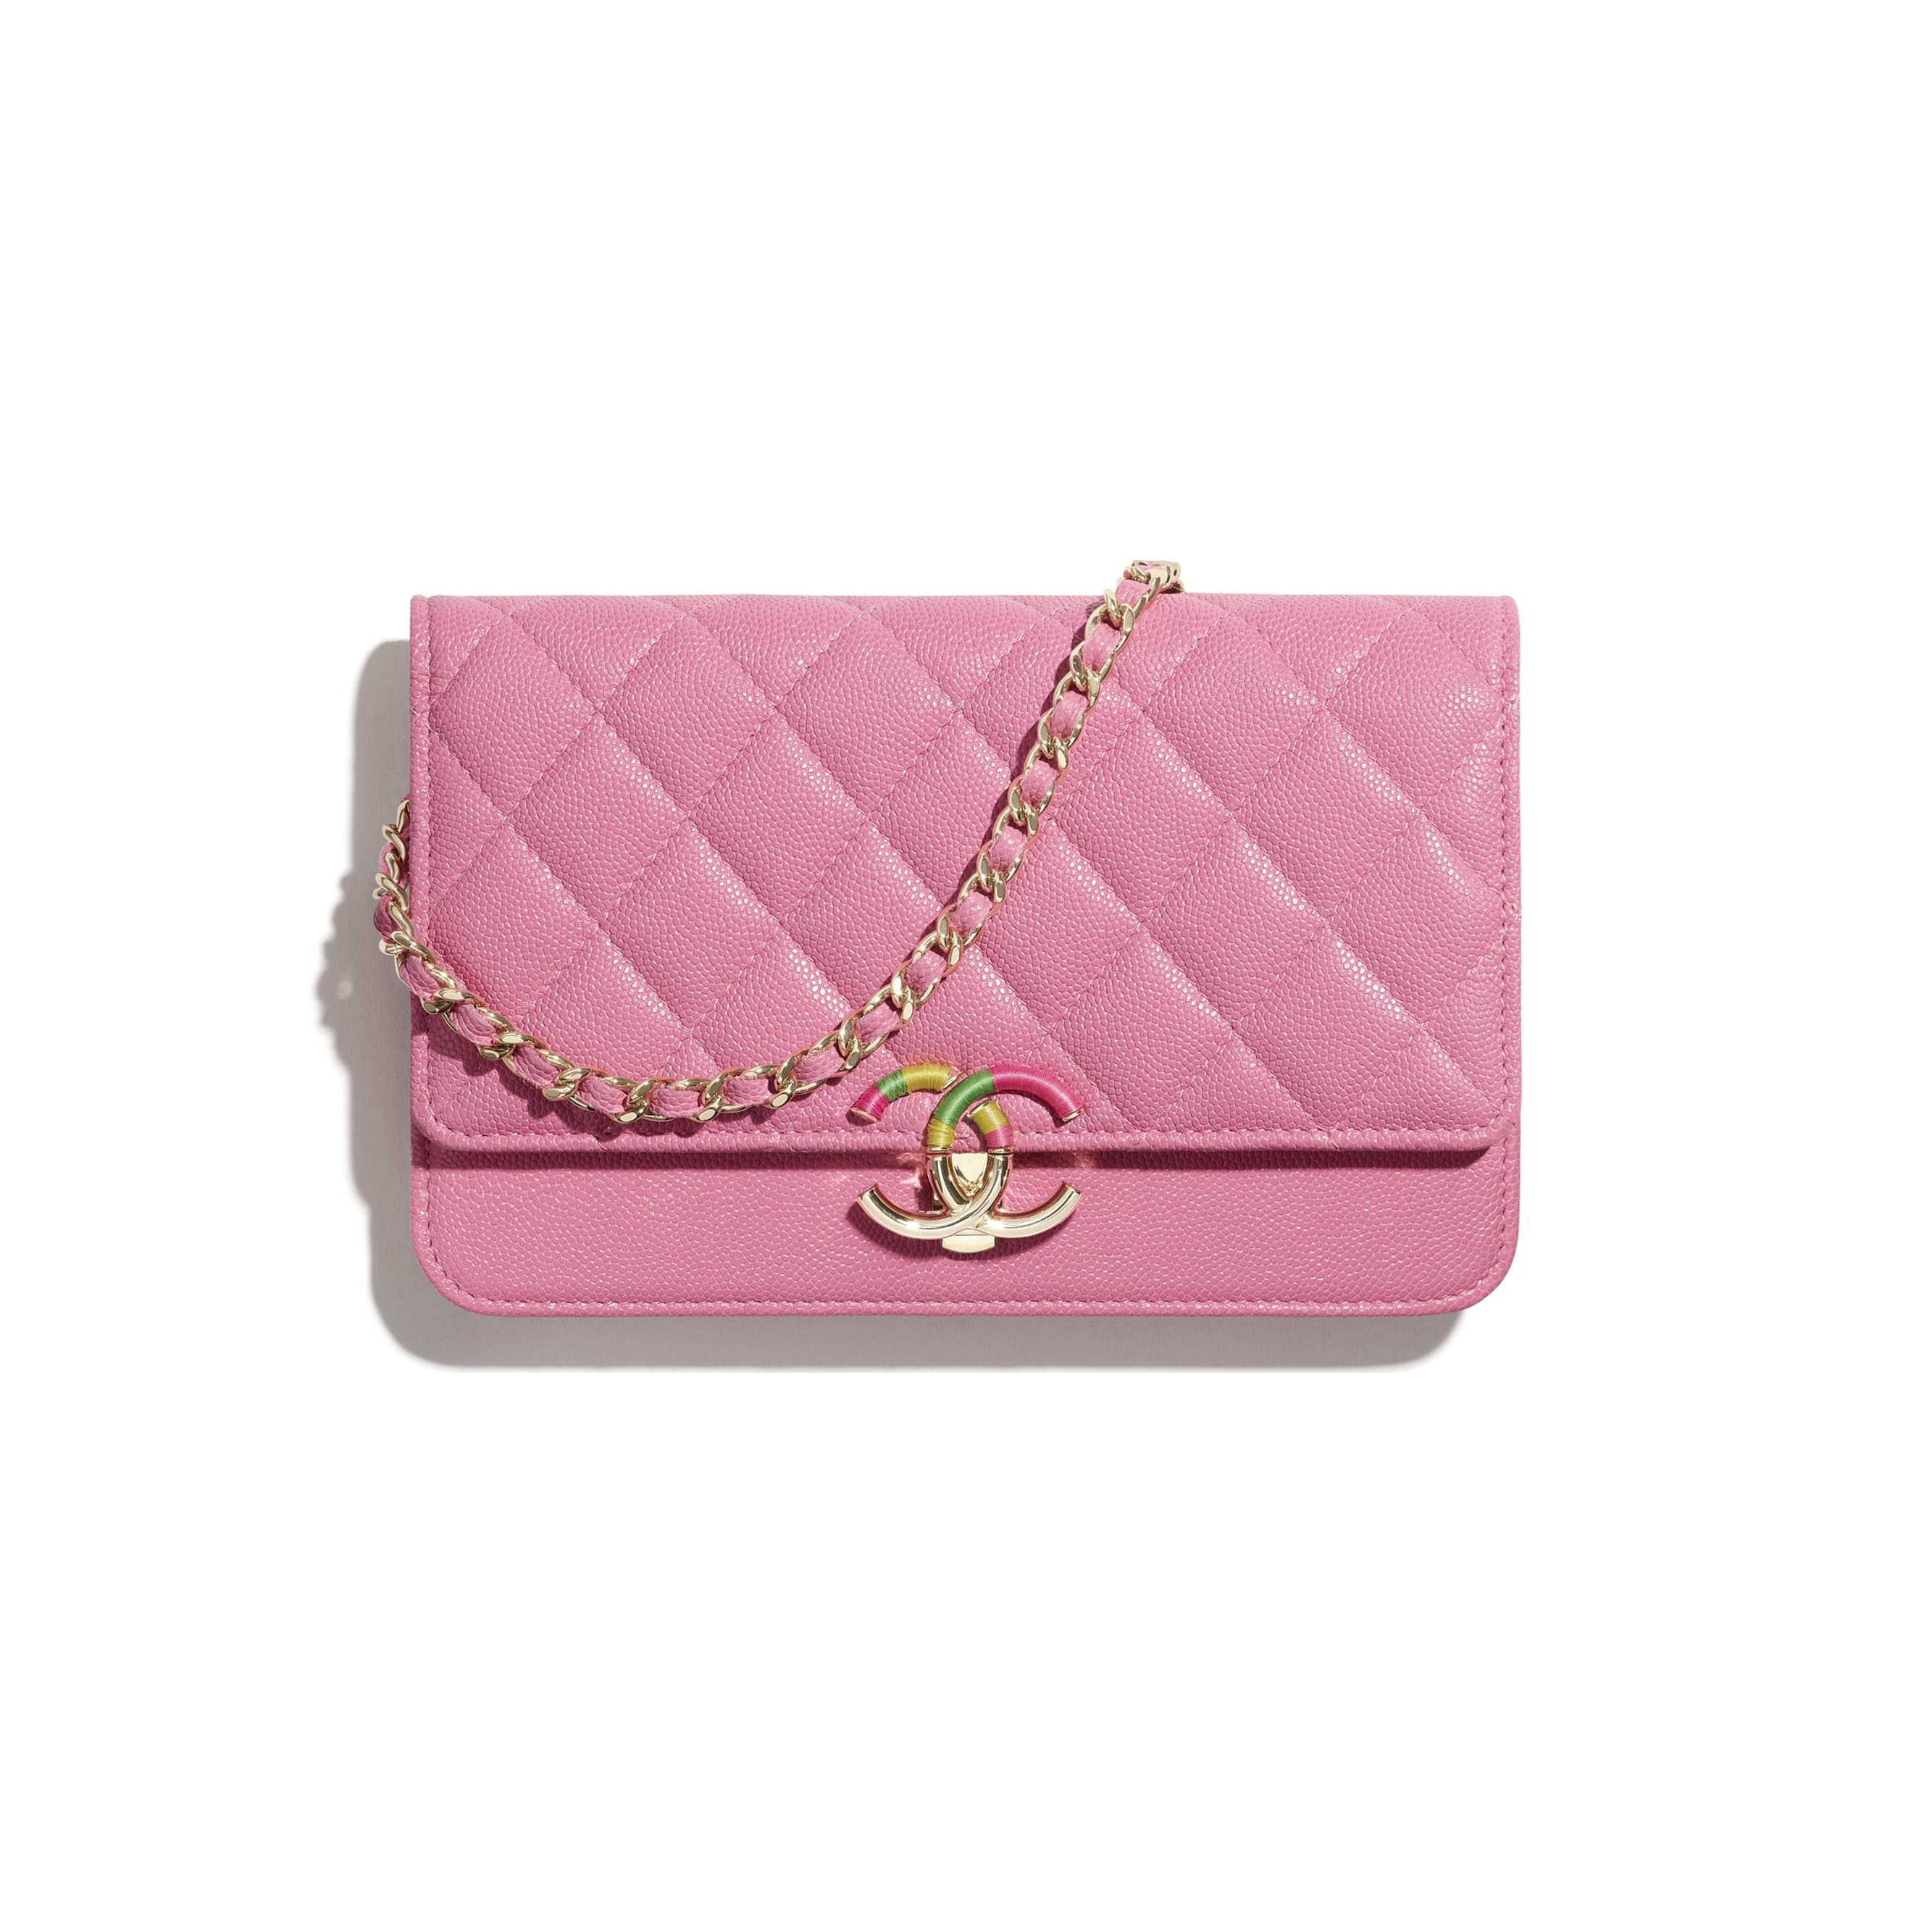 Wallet On Chain - Pink - Grained Calfskin & Gold-Tone Metal - CHANEL - Default view - see standard sized version